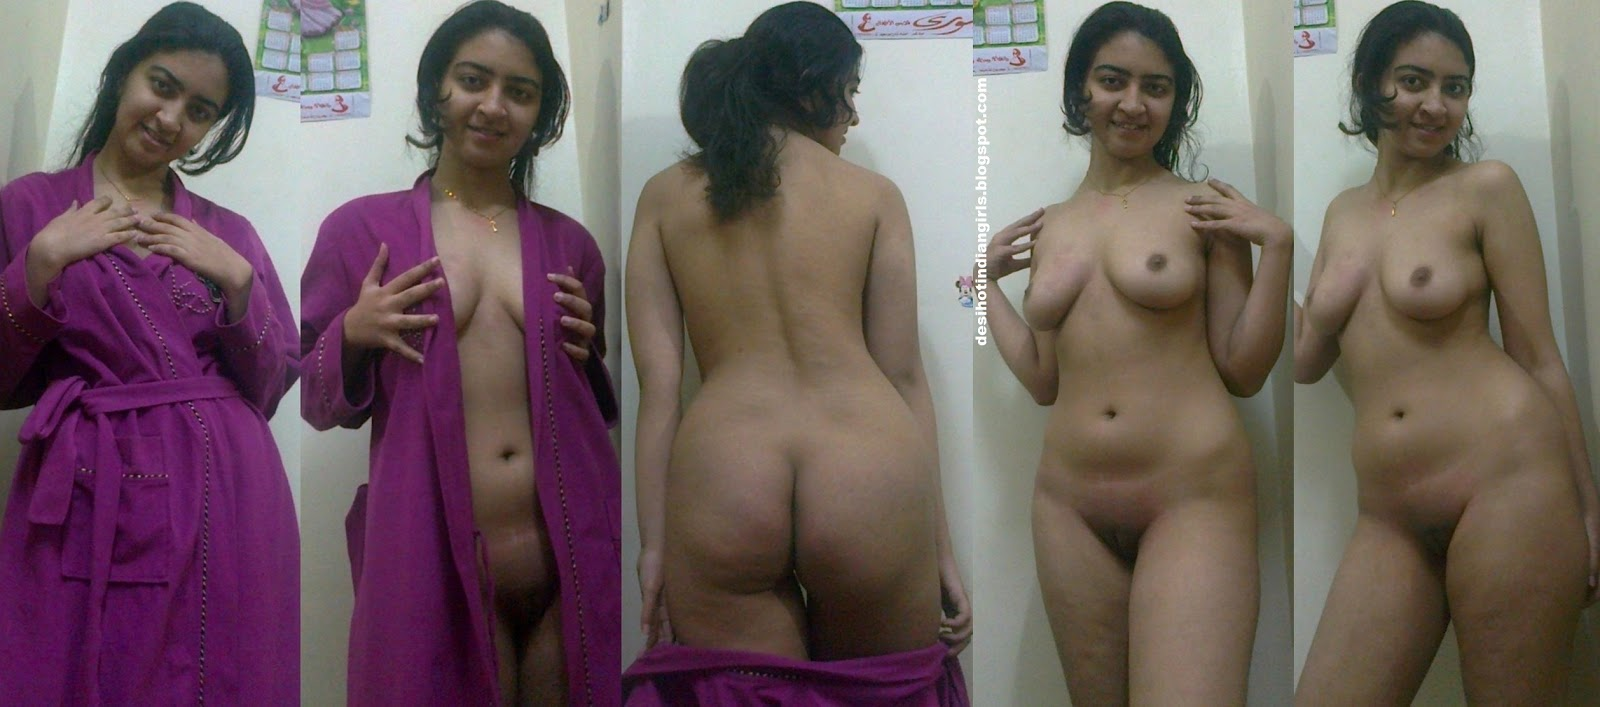 Indian womens nude photos-6573